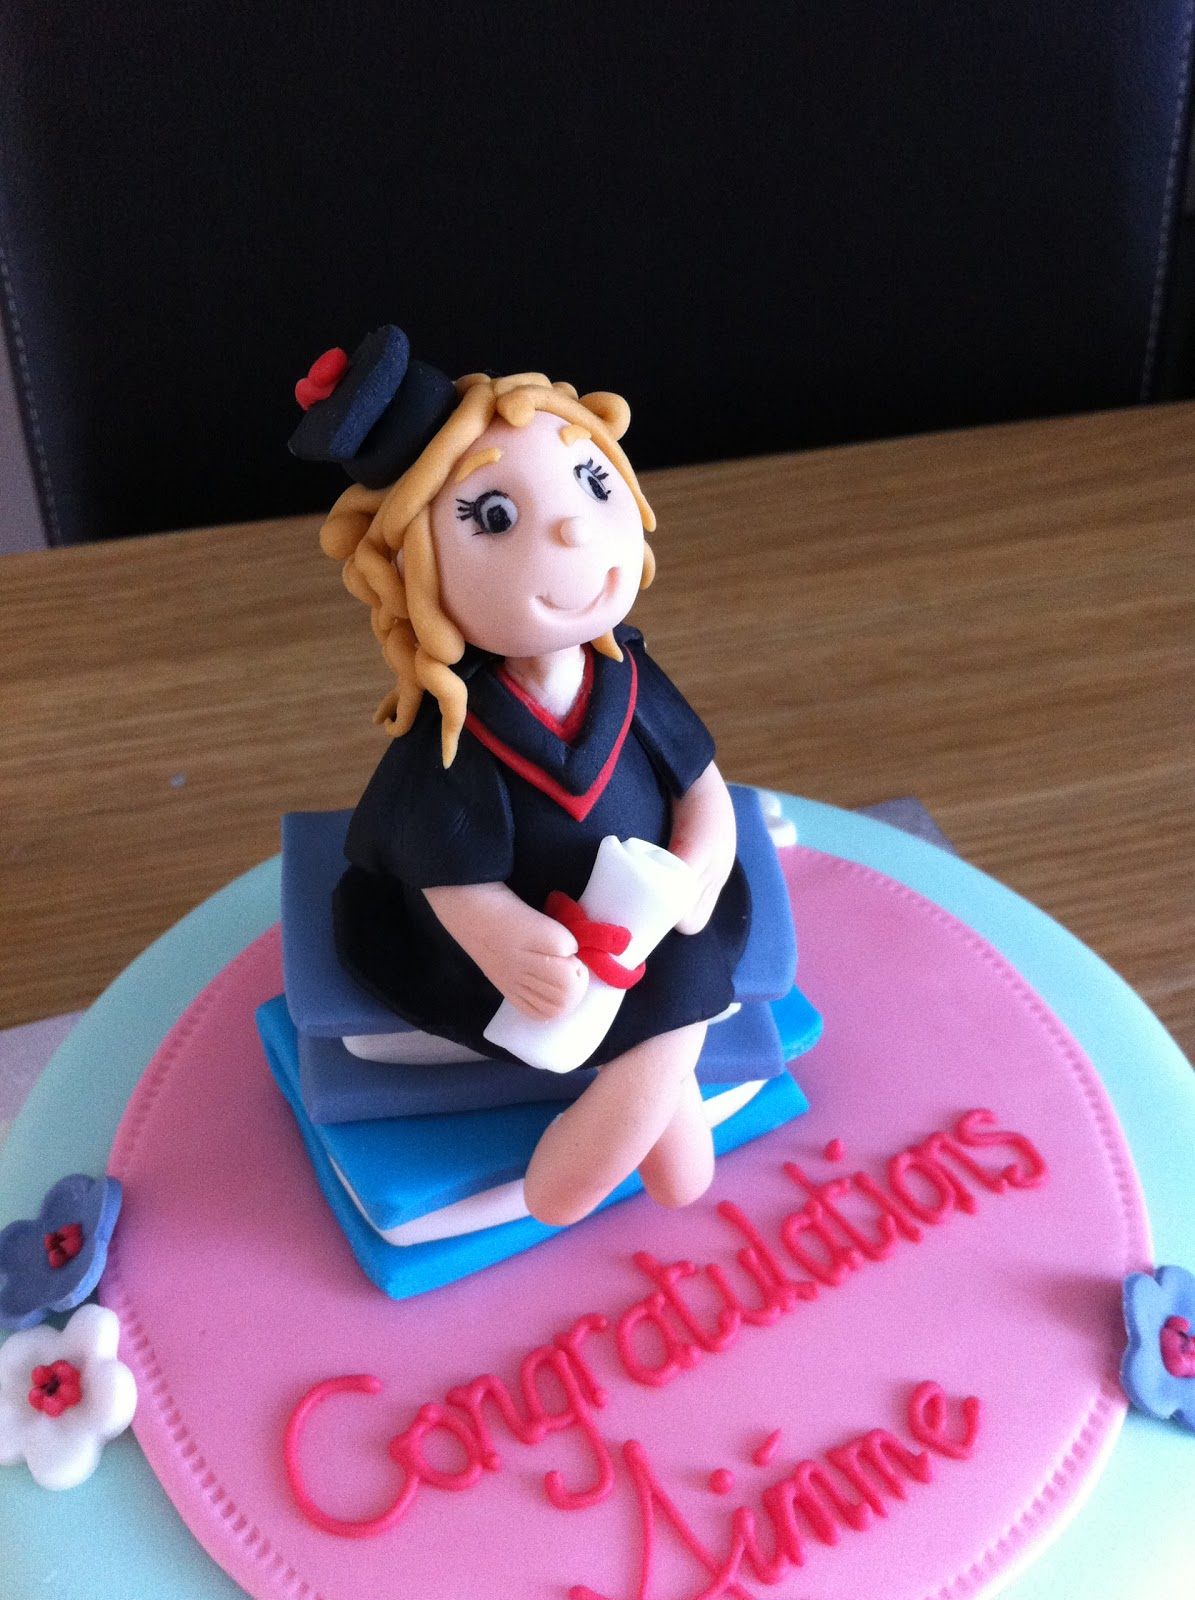 Caked In Icing Graduation Cake